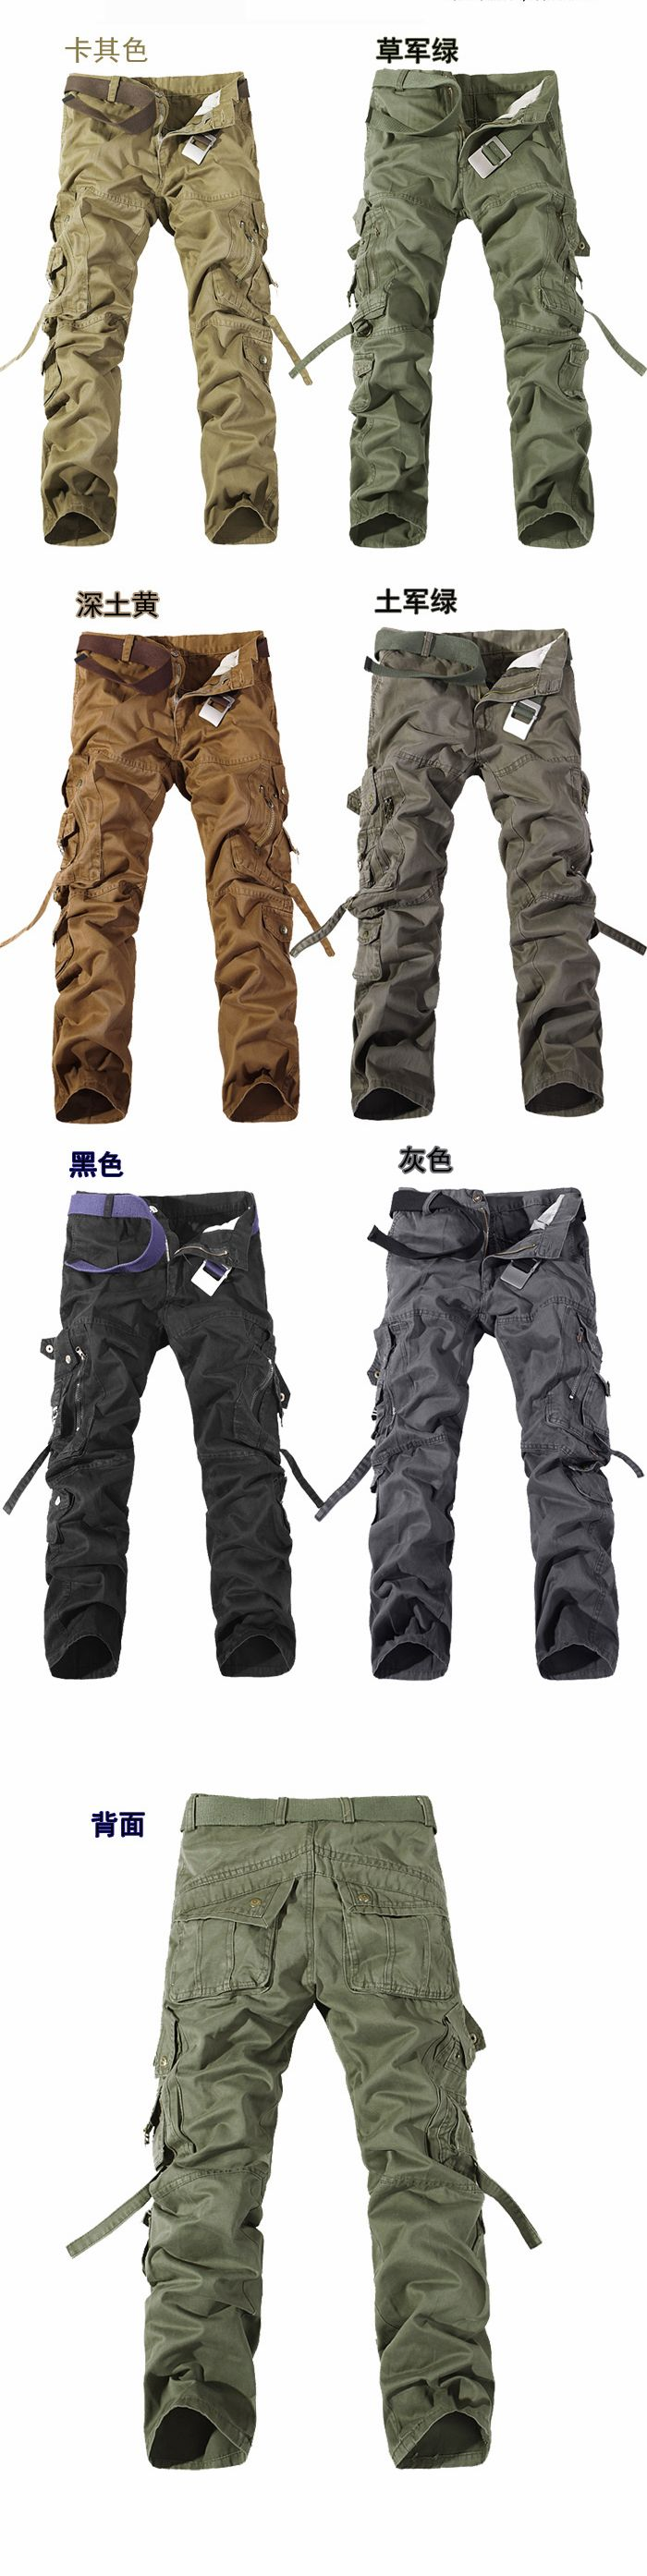 MIXCUBIC 2019 spring Autumn army tactical pants Multi-pocket washing loose army green cargo pants men casual Tooling pants 28-42 6